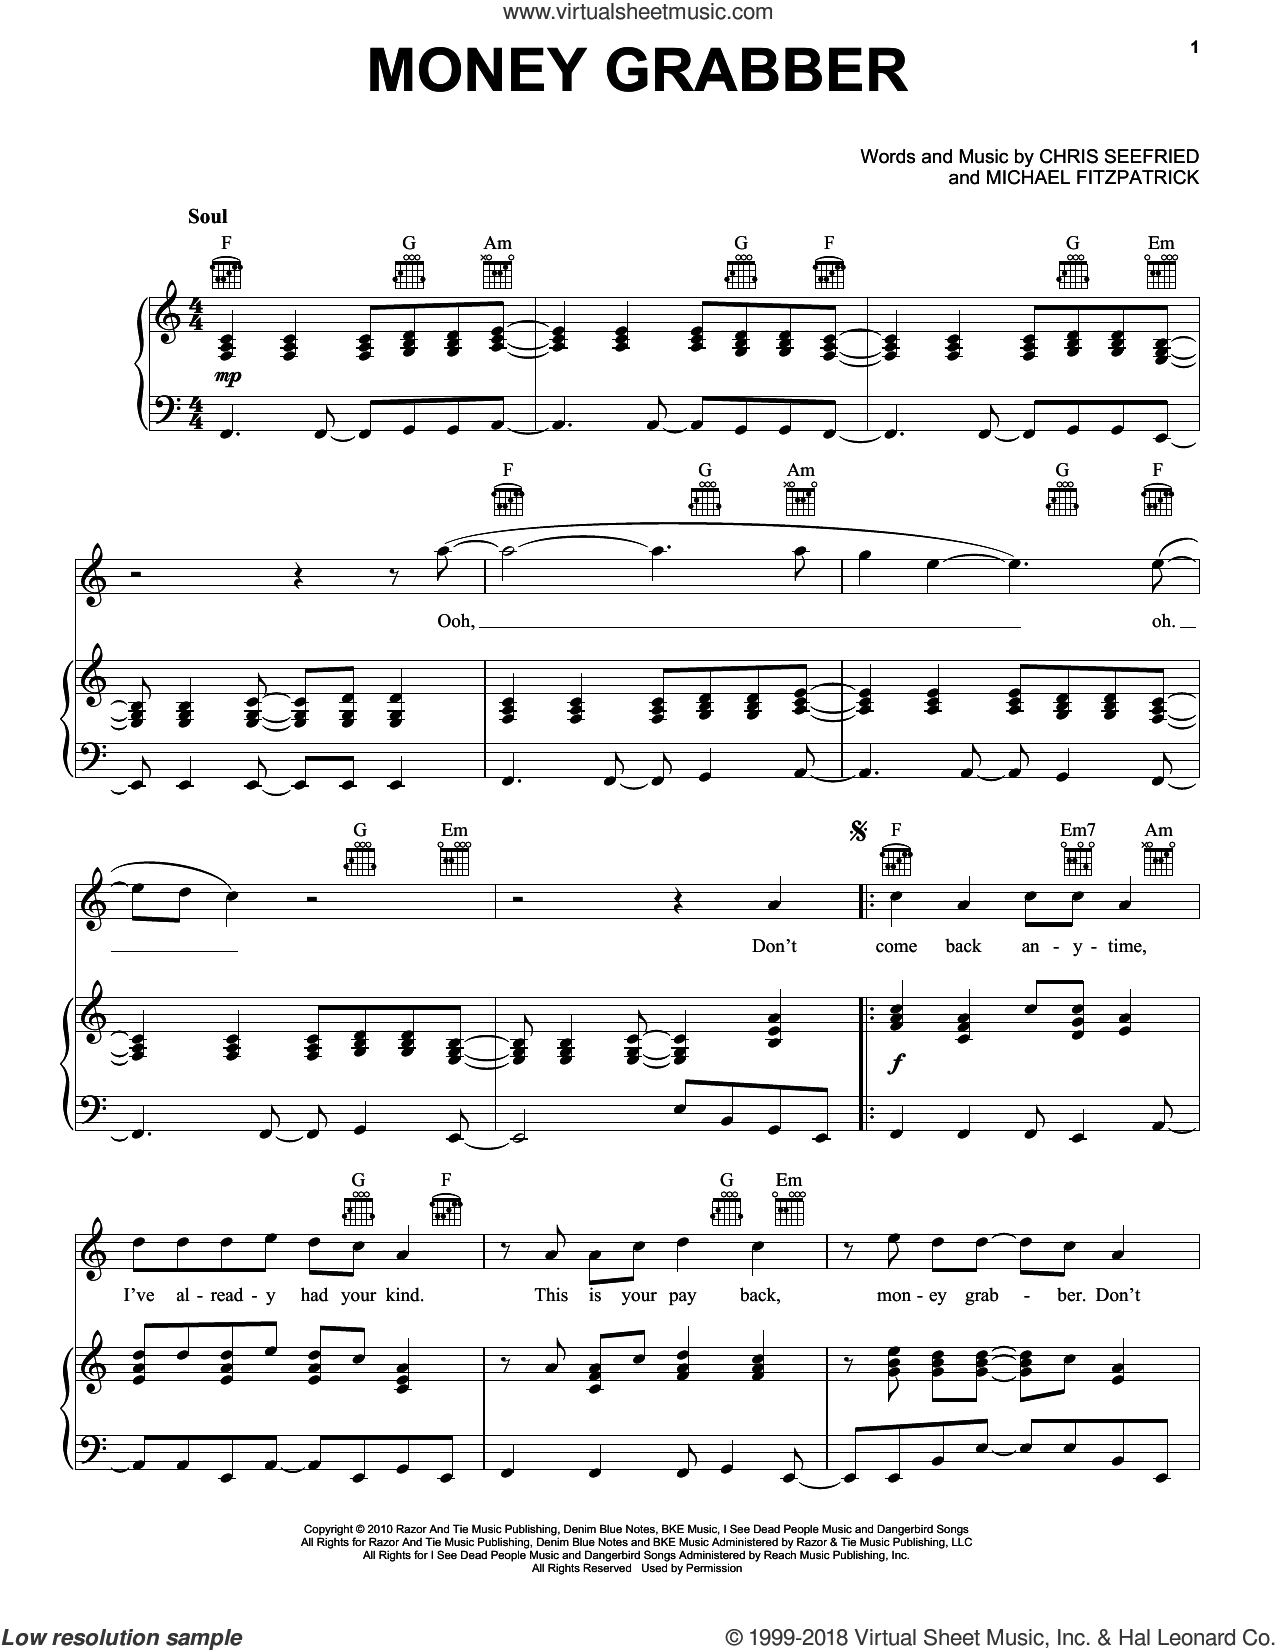 Money Grabber sheet music for voice, piano or guitar by Michael Fitzpatrick. Score Image Preview.